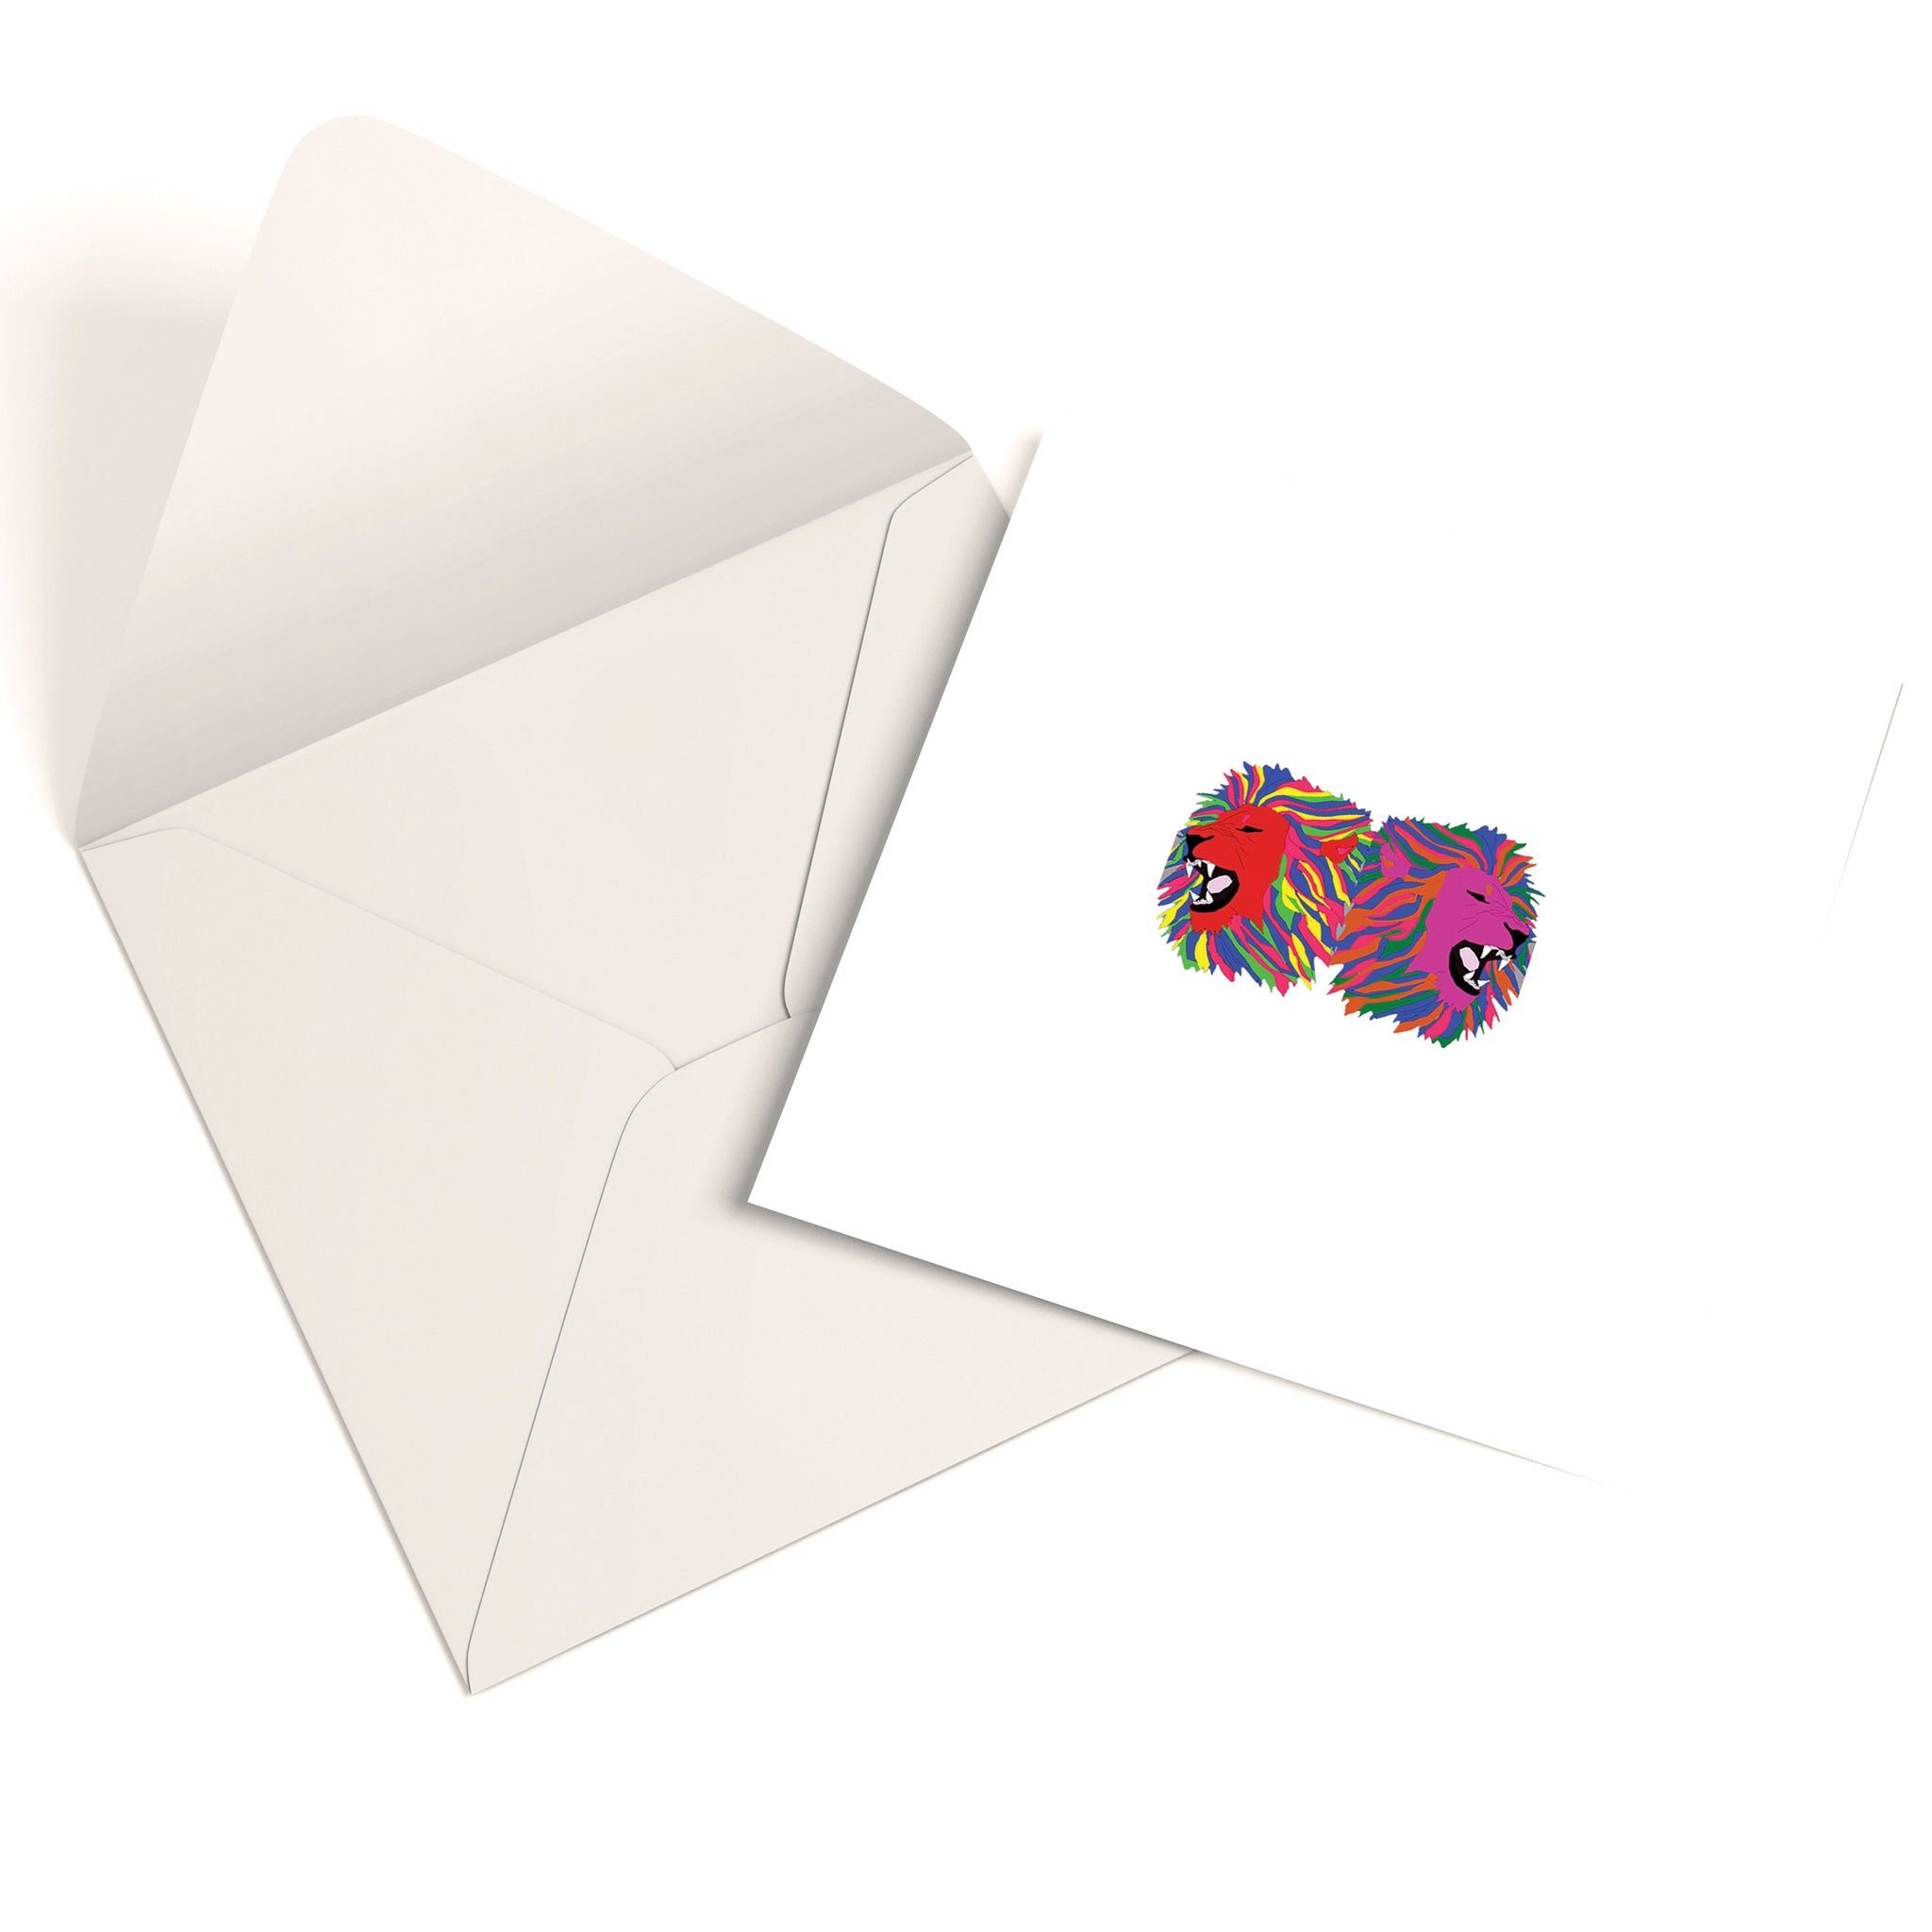 Colourful Geometric Lions Greetings Card